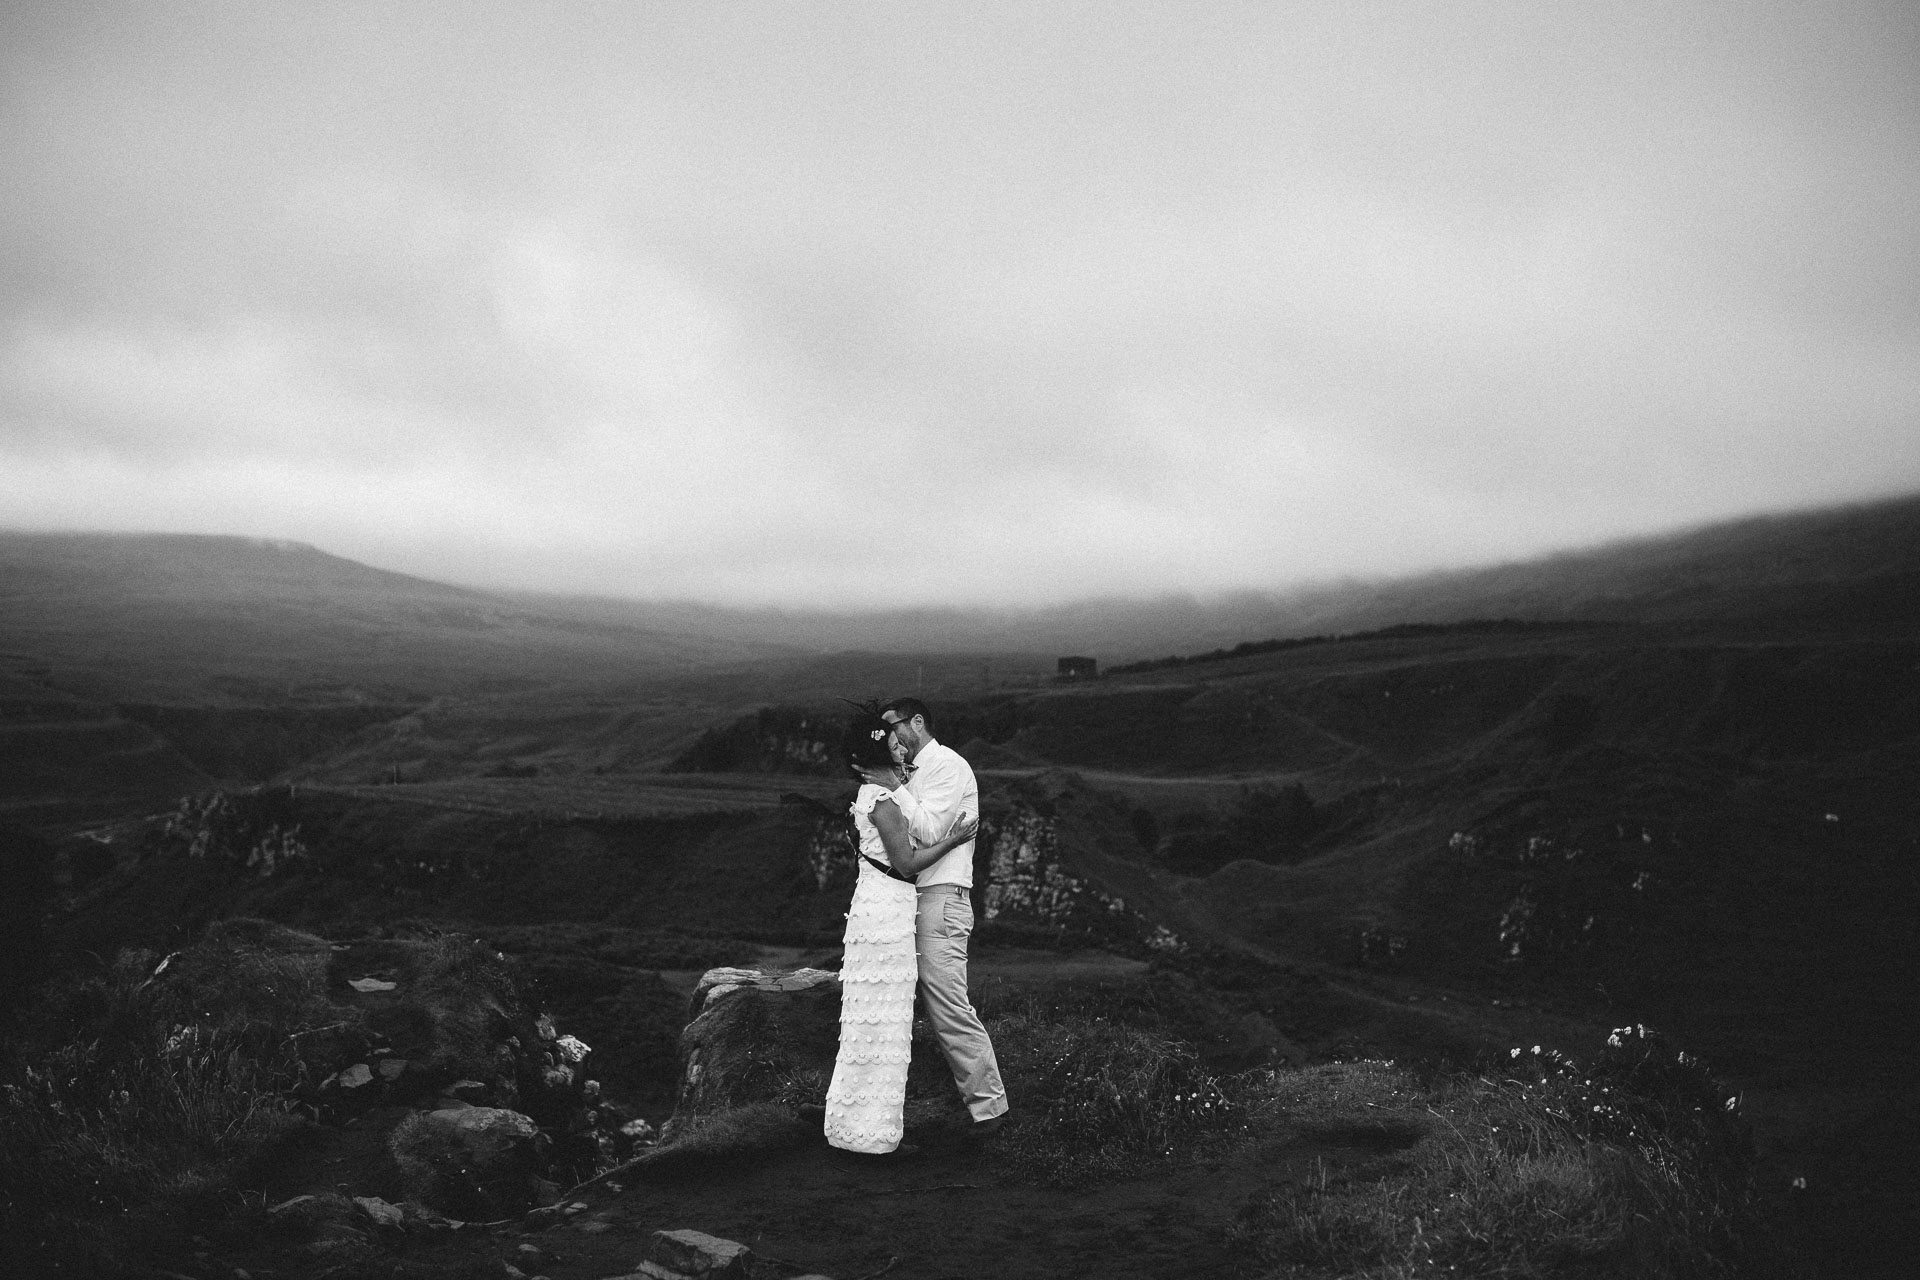 Megan_Matt_Elopement_IntimateWedding_Scotland_IsleOfSkye_JeanLaurentGaudy_101